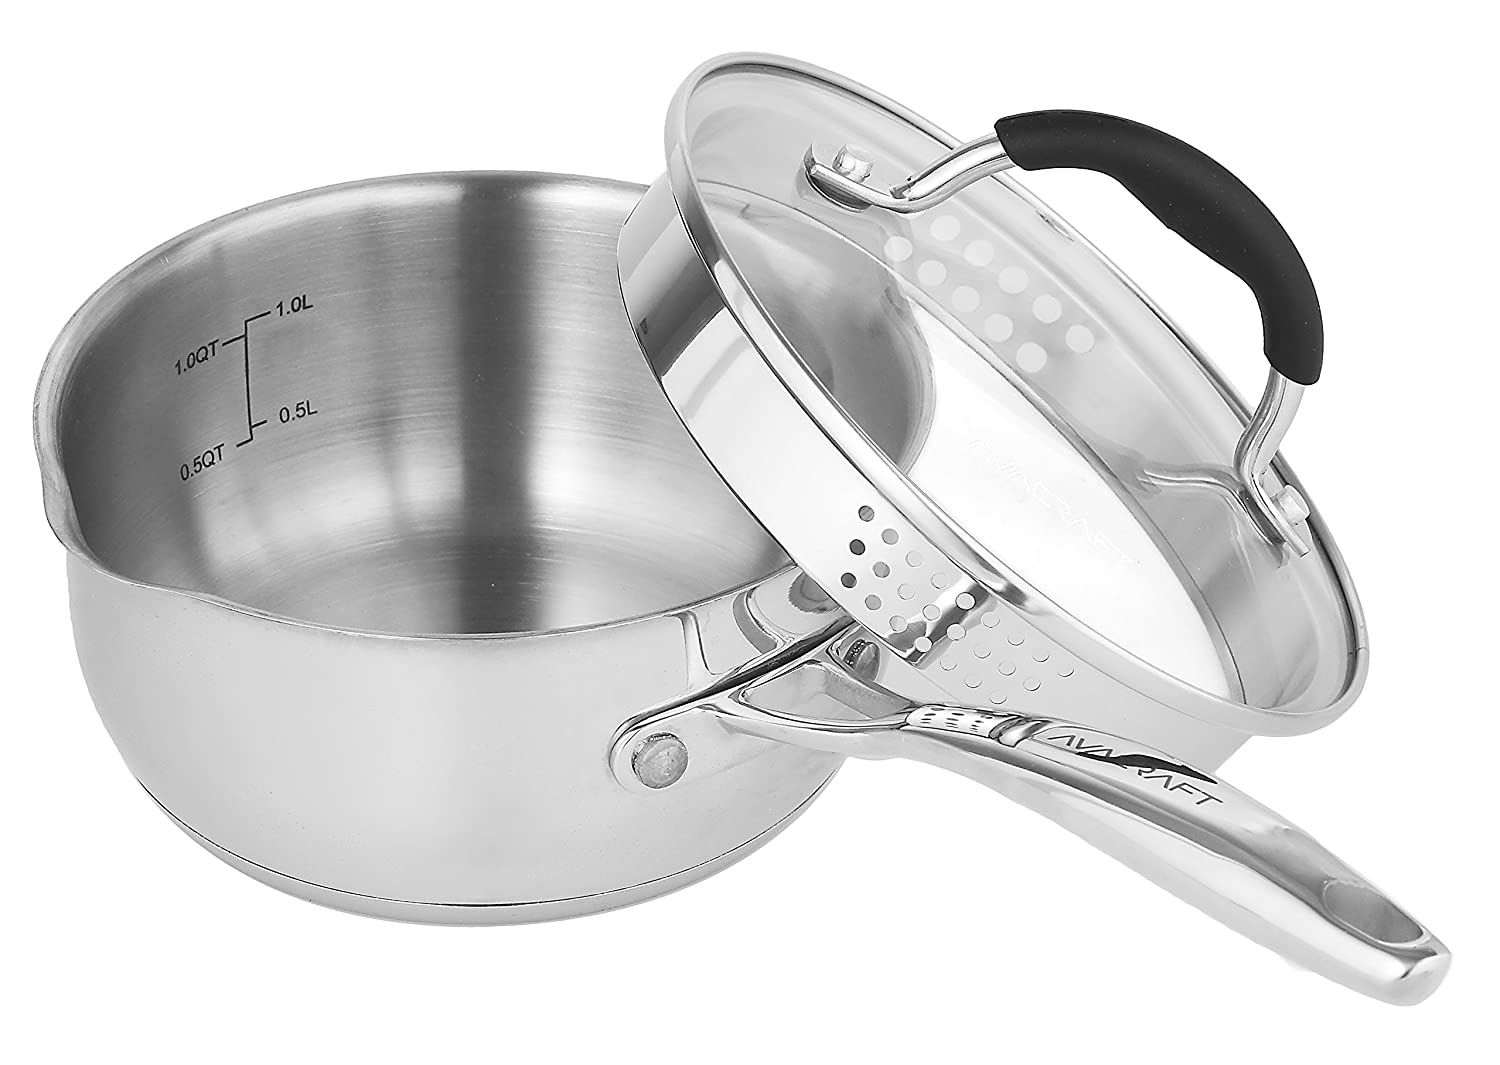 AVACRAFT Stainless Steel Saucepan with Glass Lid, Strainer Lid, Two Side Spouts for Easy Pour with Ergonomic Handle, Multipurpose Sauce Pan with Lid, Sauce Pot (Tri-Ply Capsule Bottom, 1.5 QT)